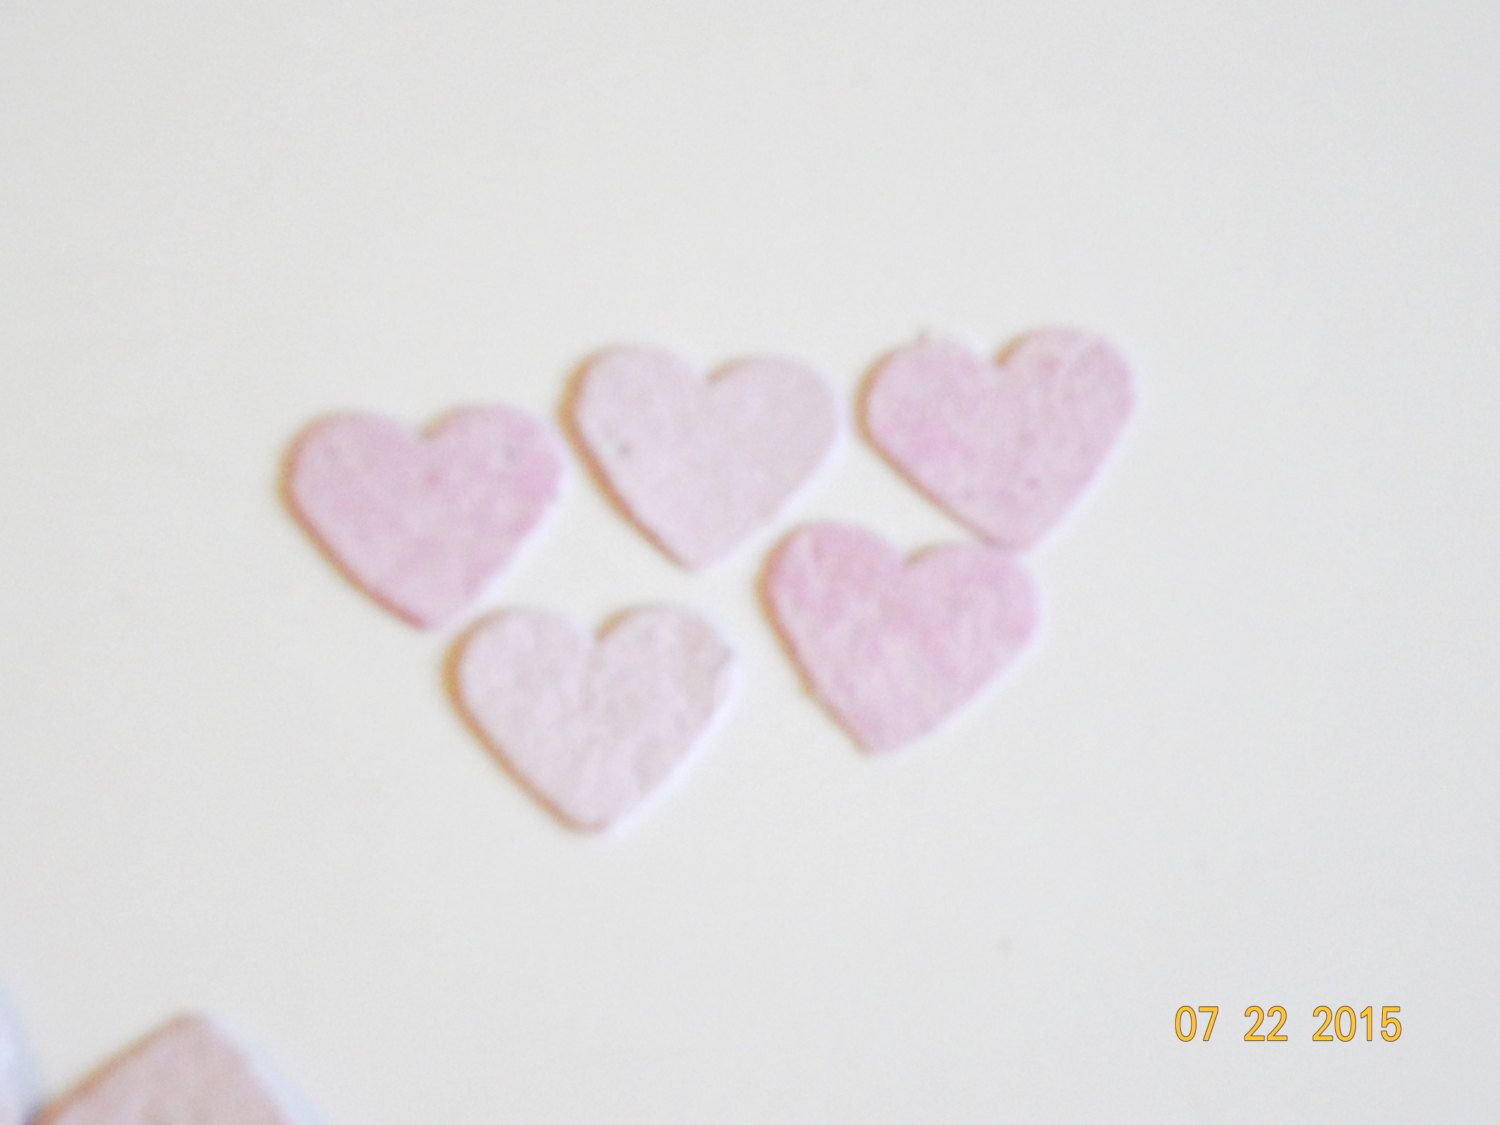 New flower seed paper hearts pink recycles baby shower girls new flower seed paper hearts pink recycles baby shower girls confetti scrapbook cards decoration 150 die mightylinksfo Choice Image